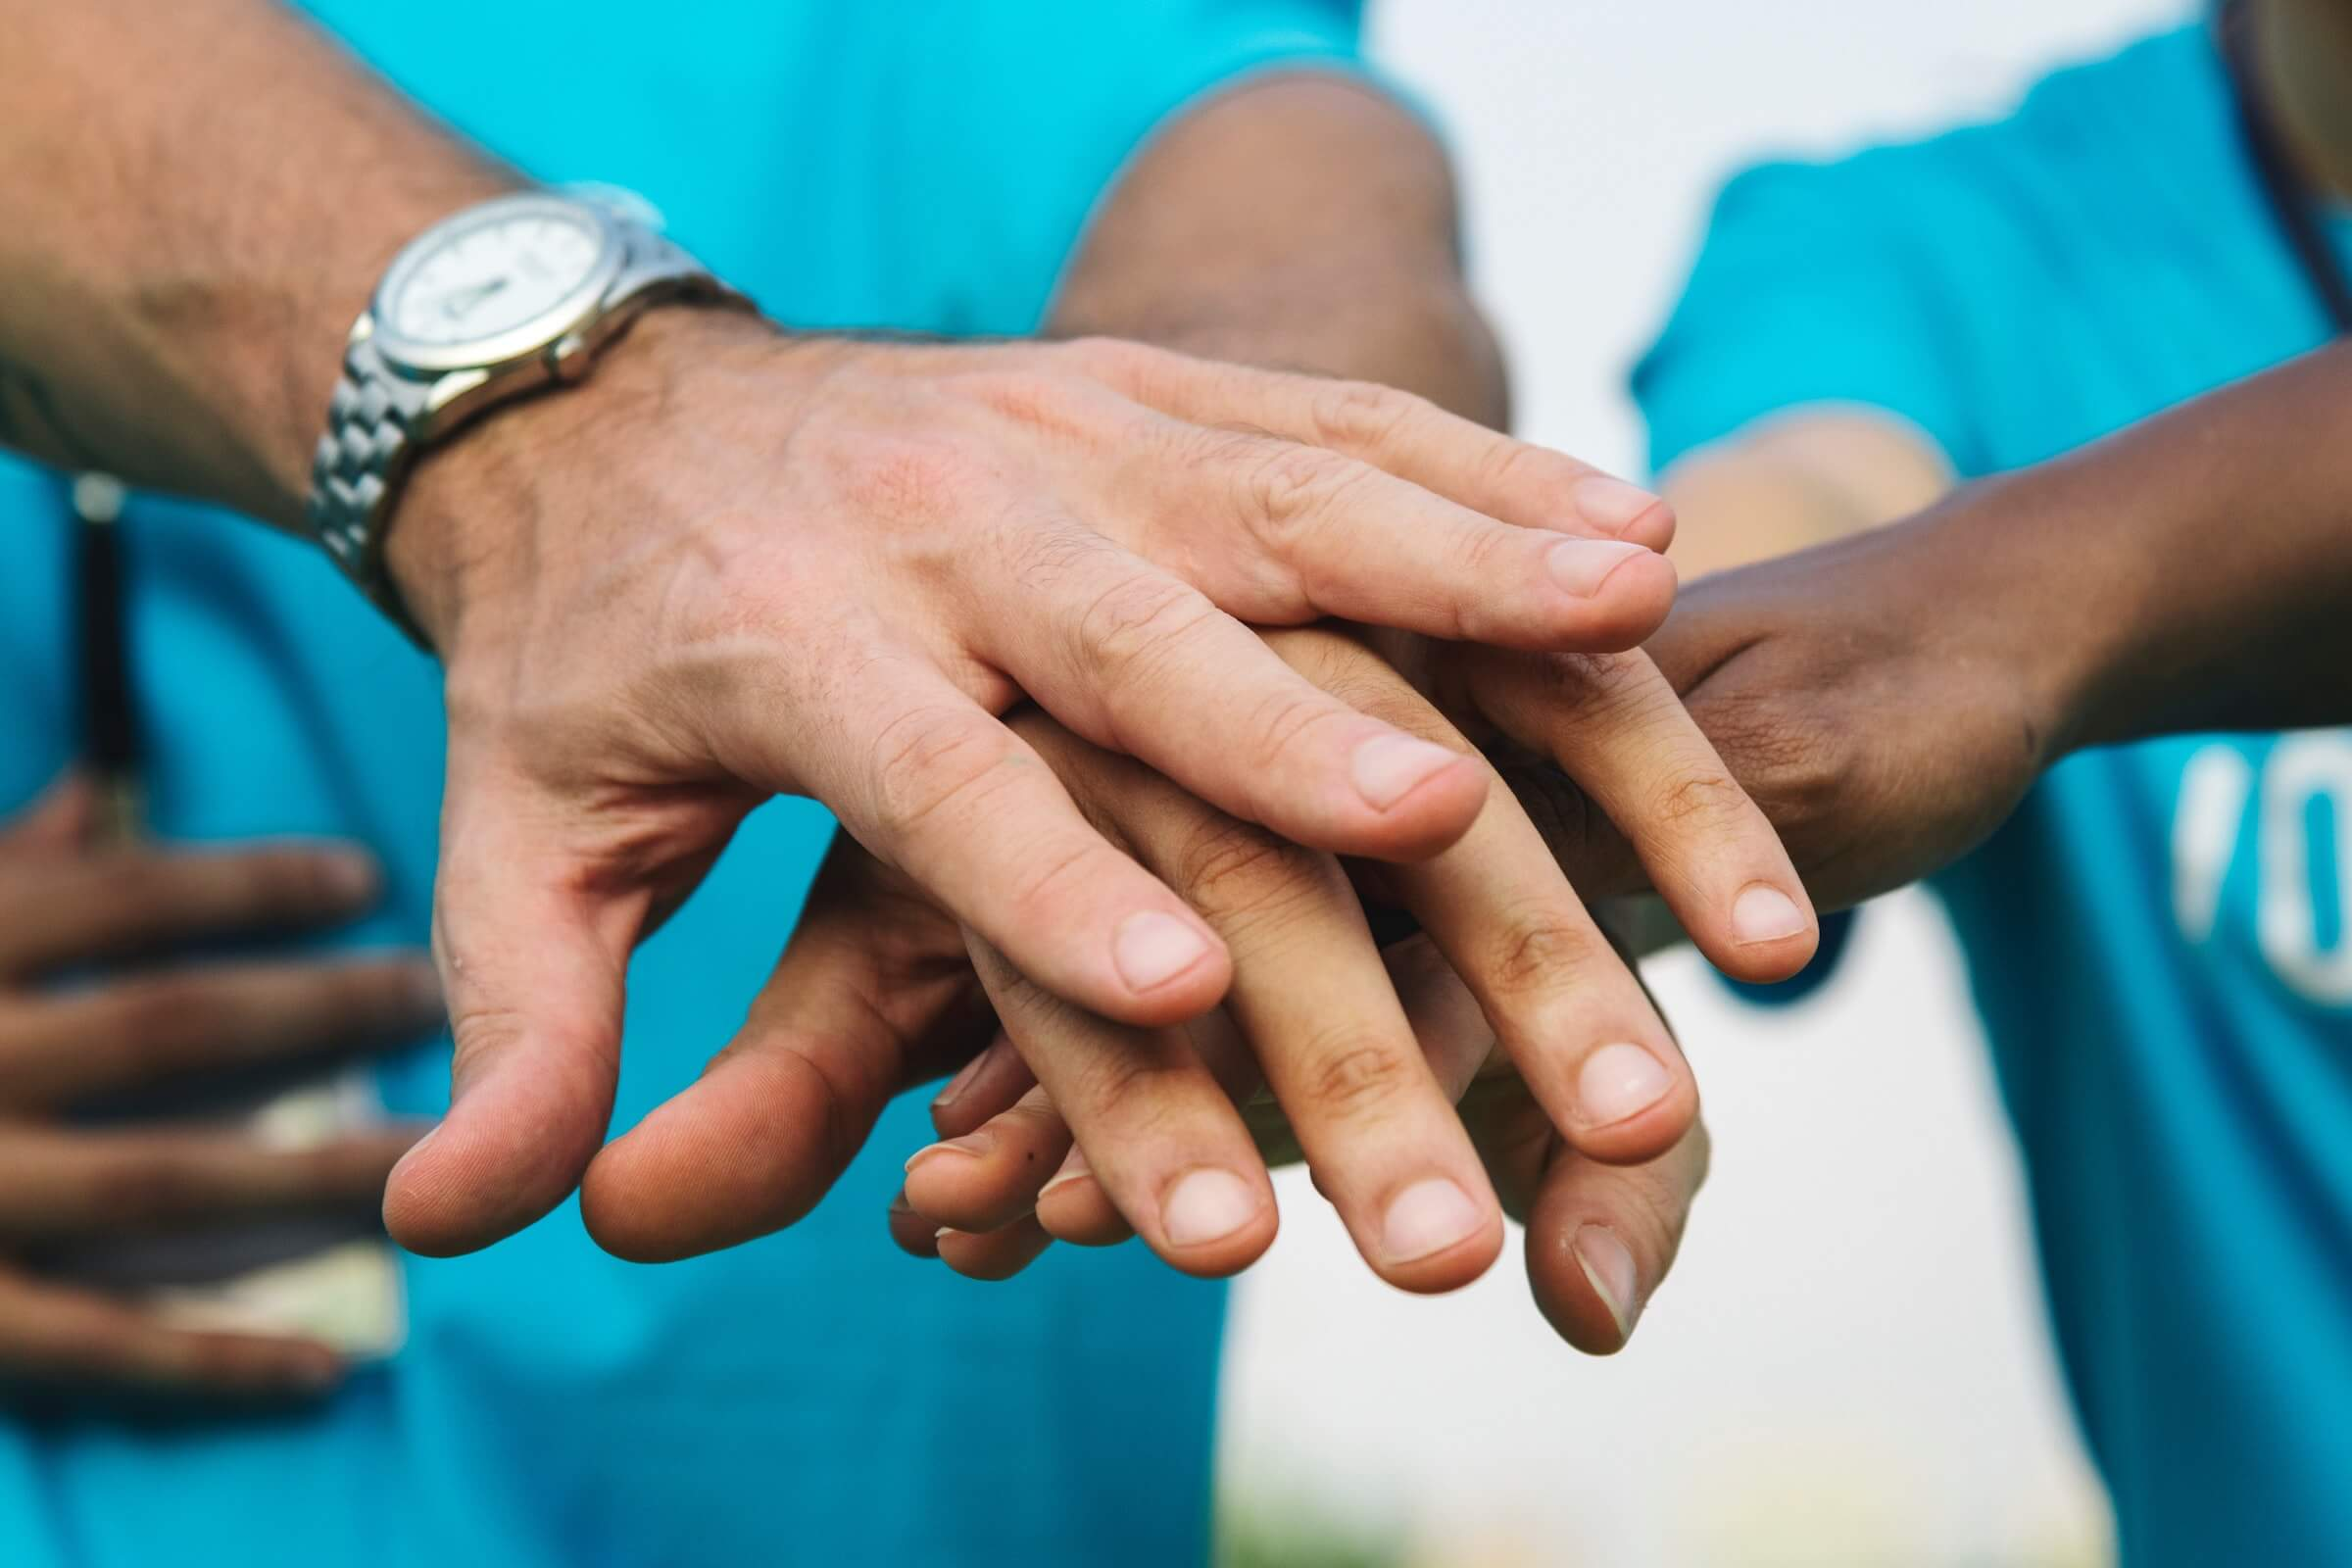 Hands on top of each other - UNICEF Testimonial of London Creative Designs